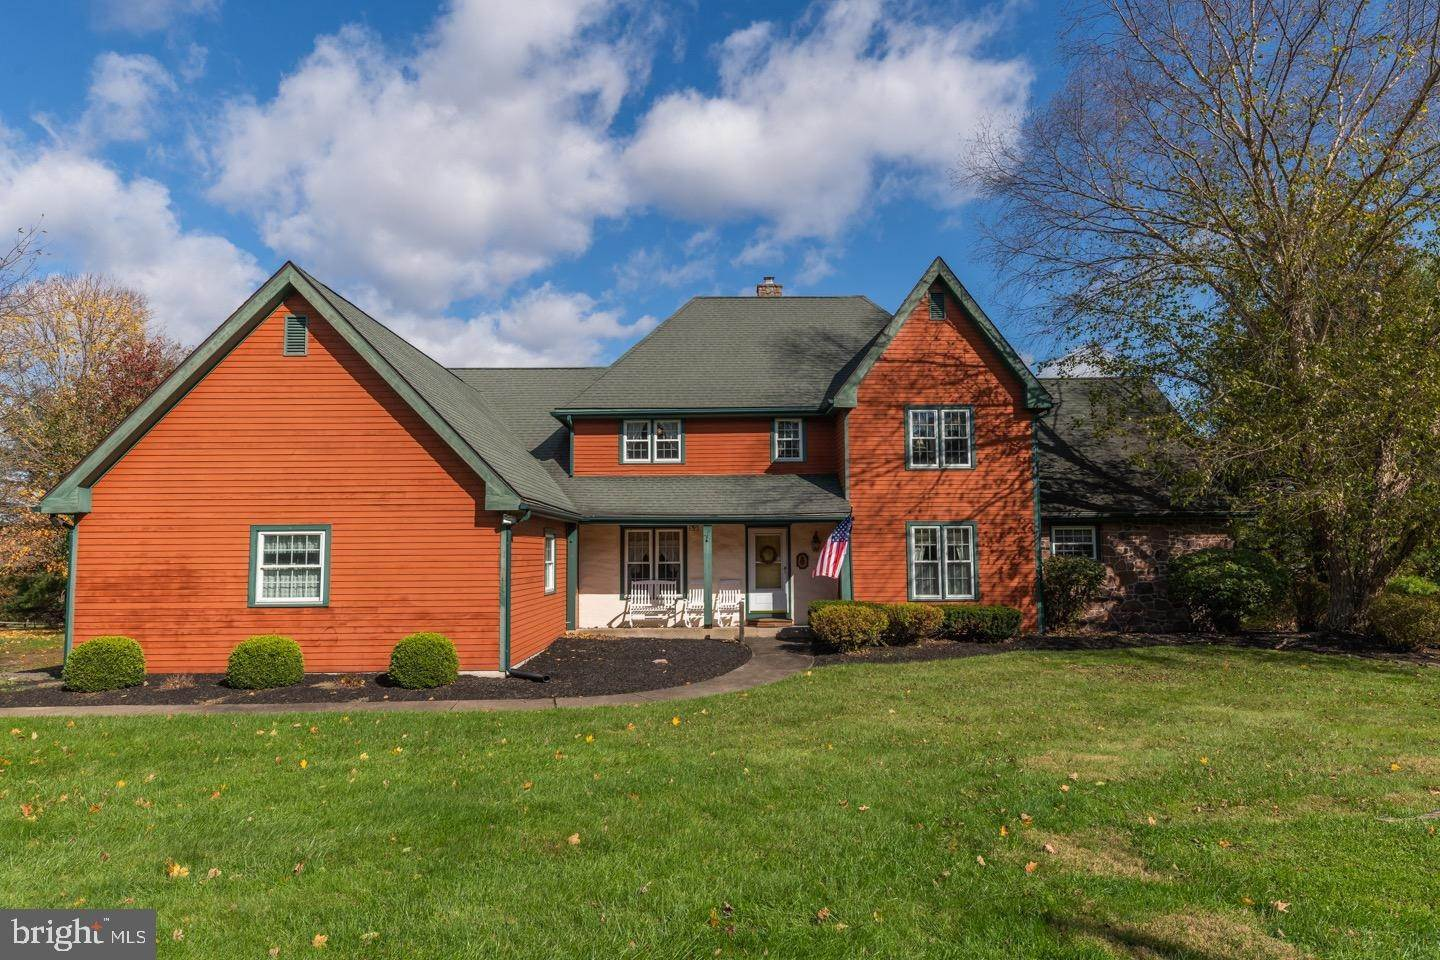 Detached House for Sale at 609 KINTNER Road Kintnersville, Pennsylvania 18930 United States